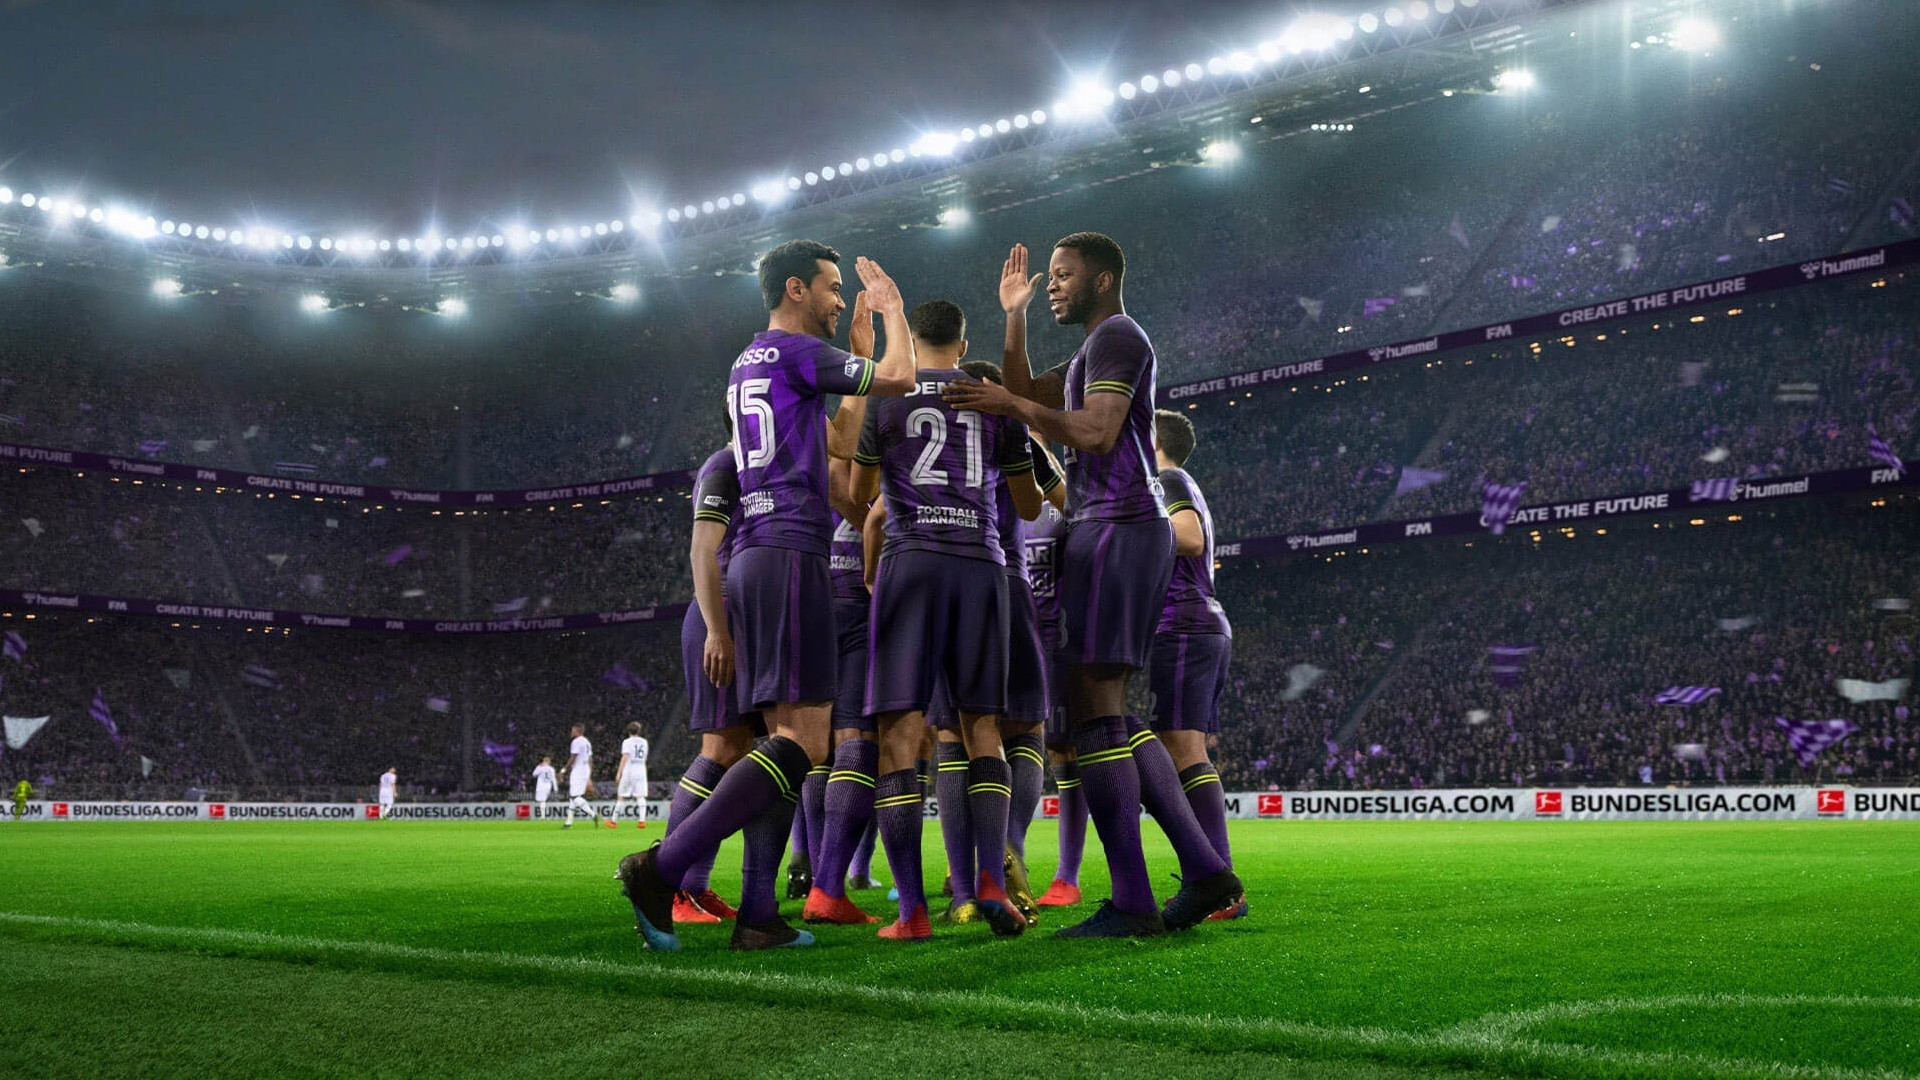 Why Football Manager 2021 Isn't Coming To PS5 Or PS4 ...